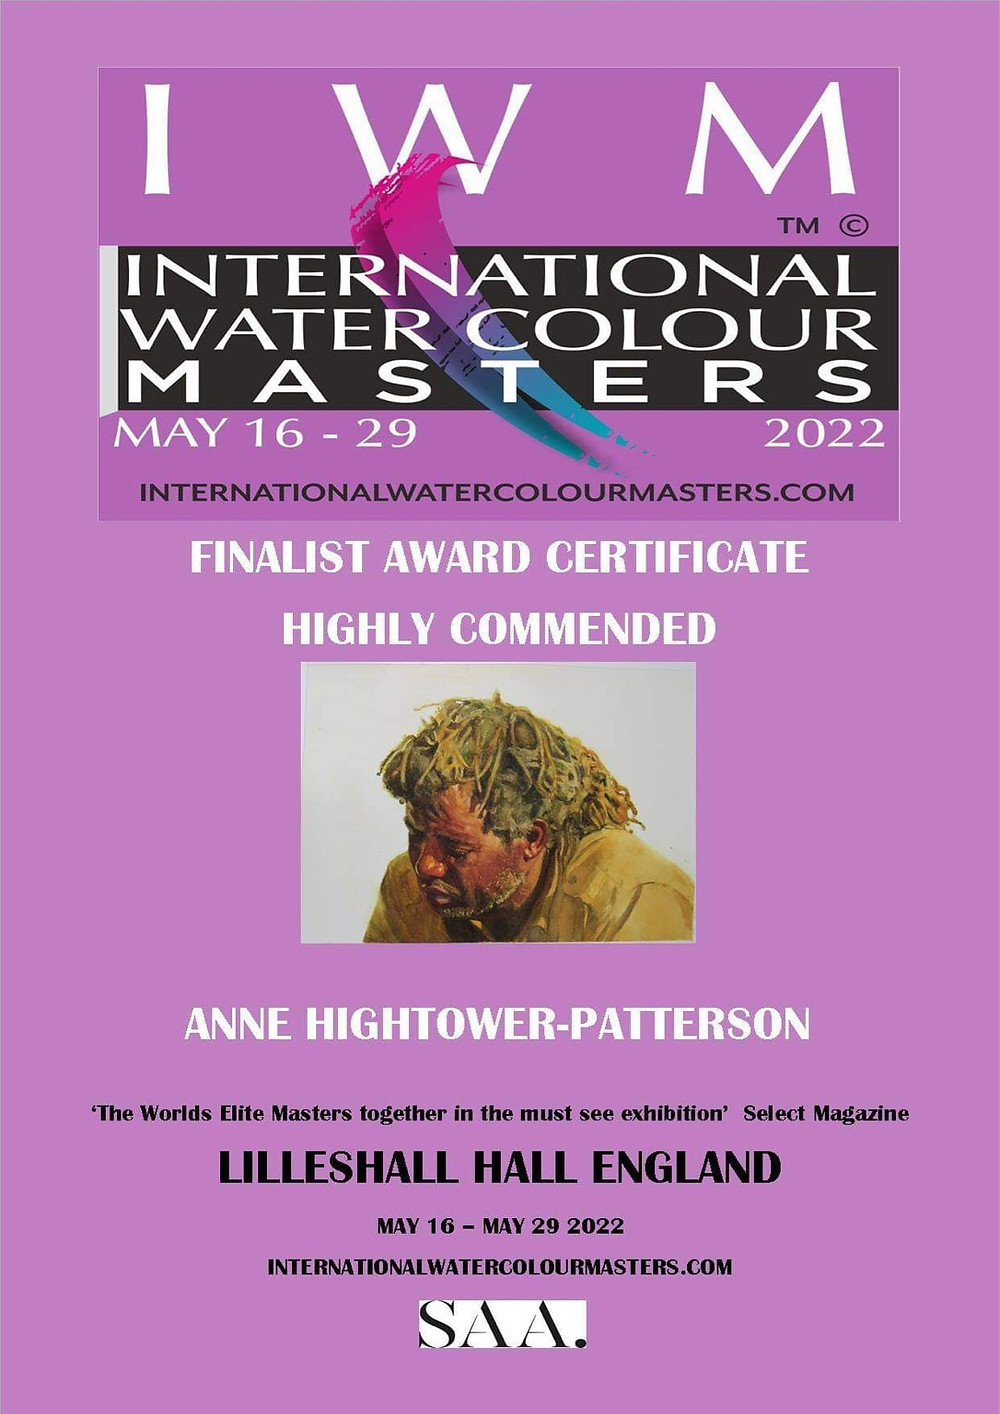 International Watercolour Masters Announcement of Finalist Award for Anne Hightower Patterson White